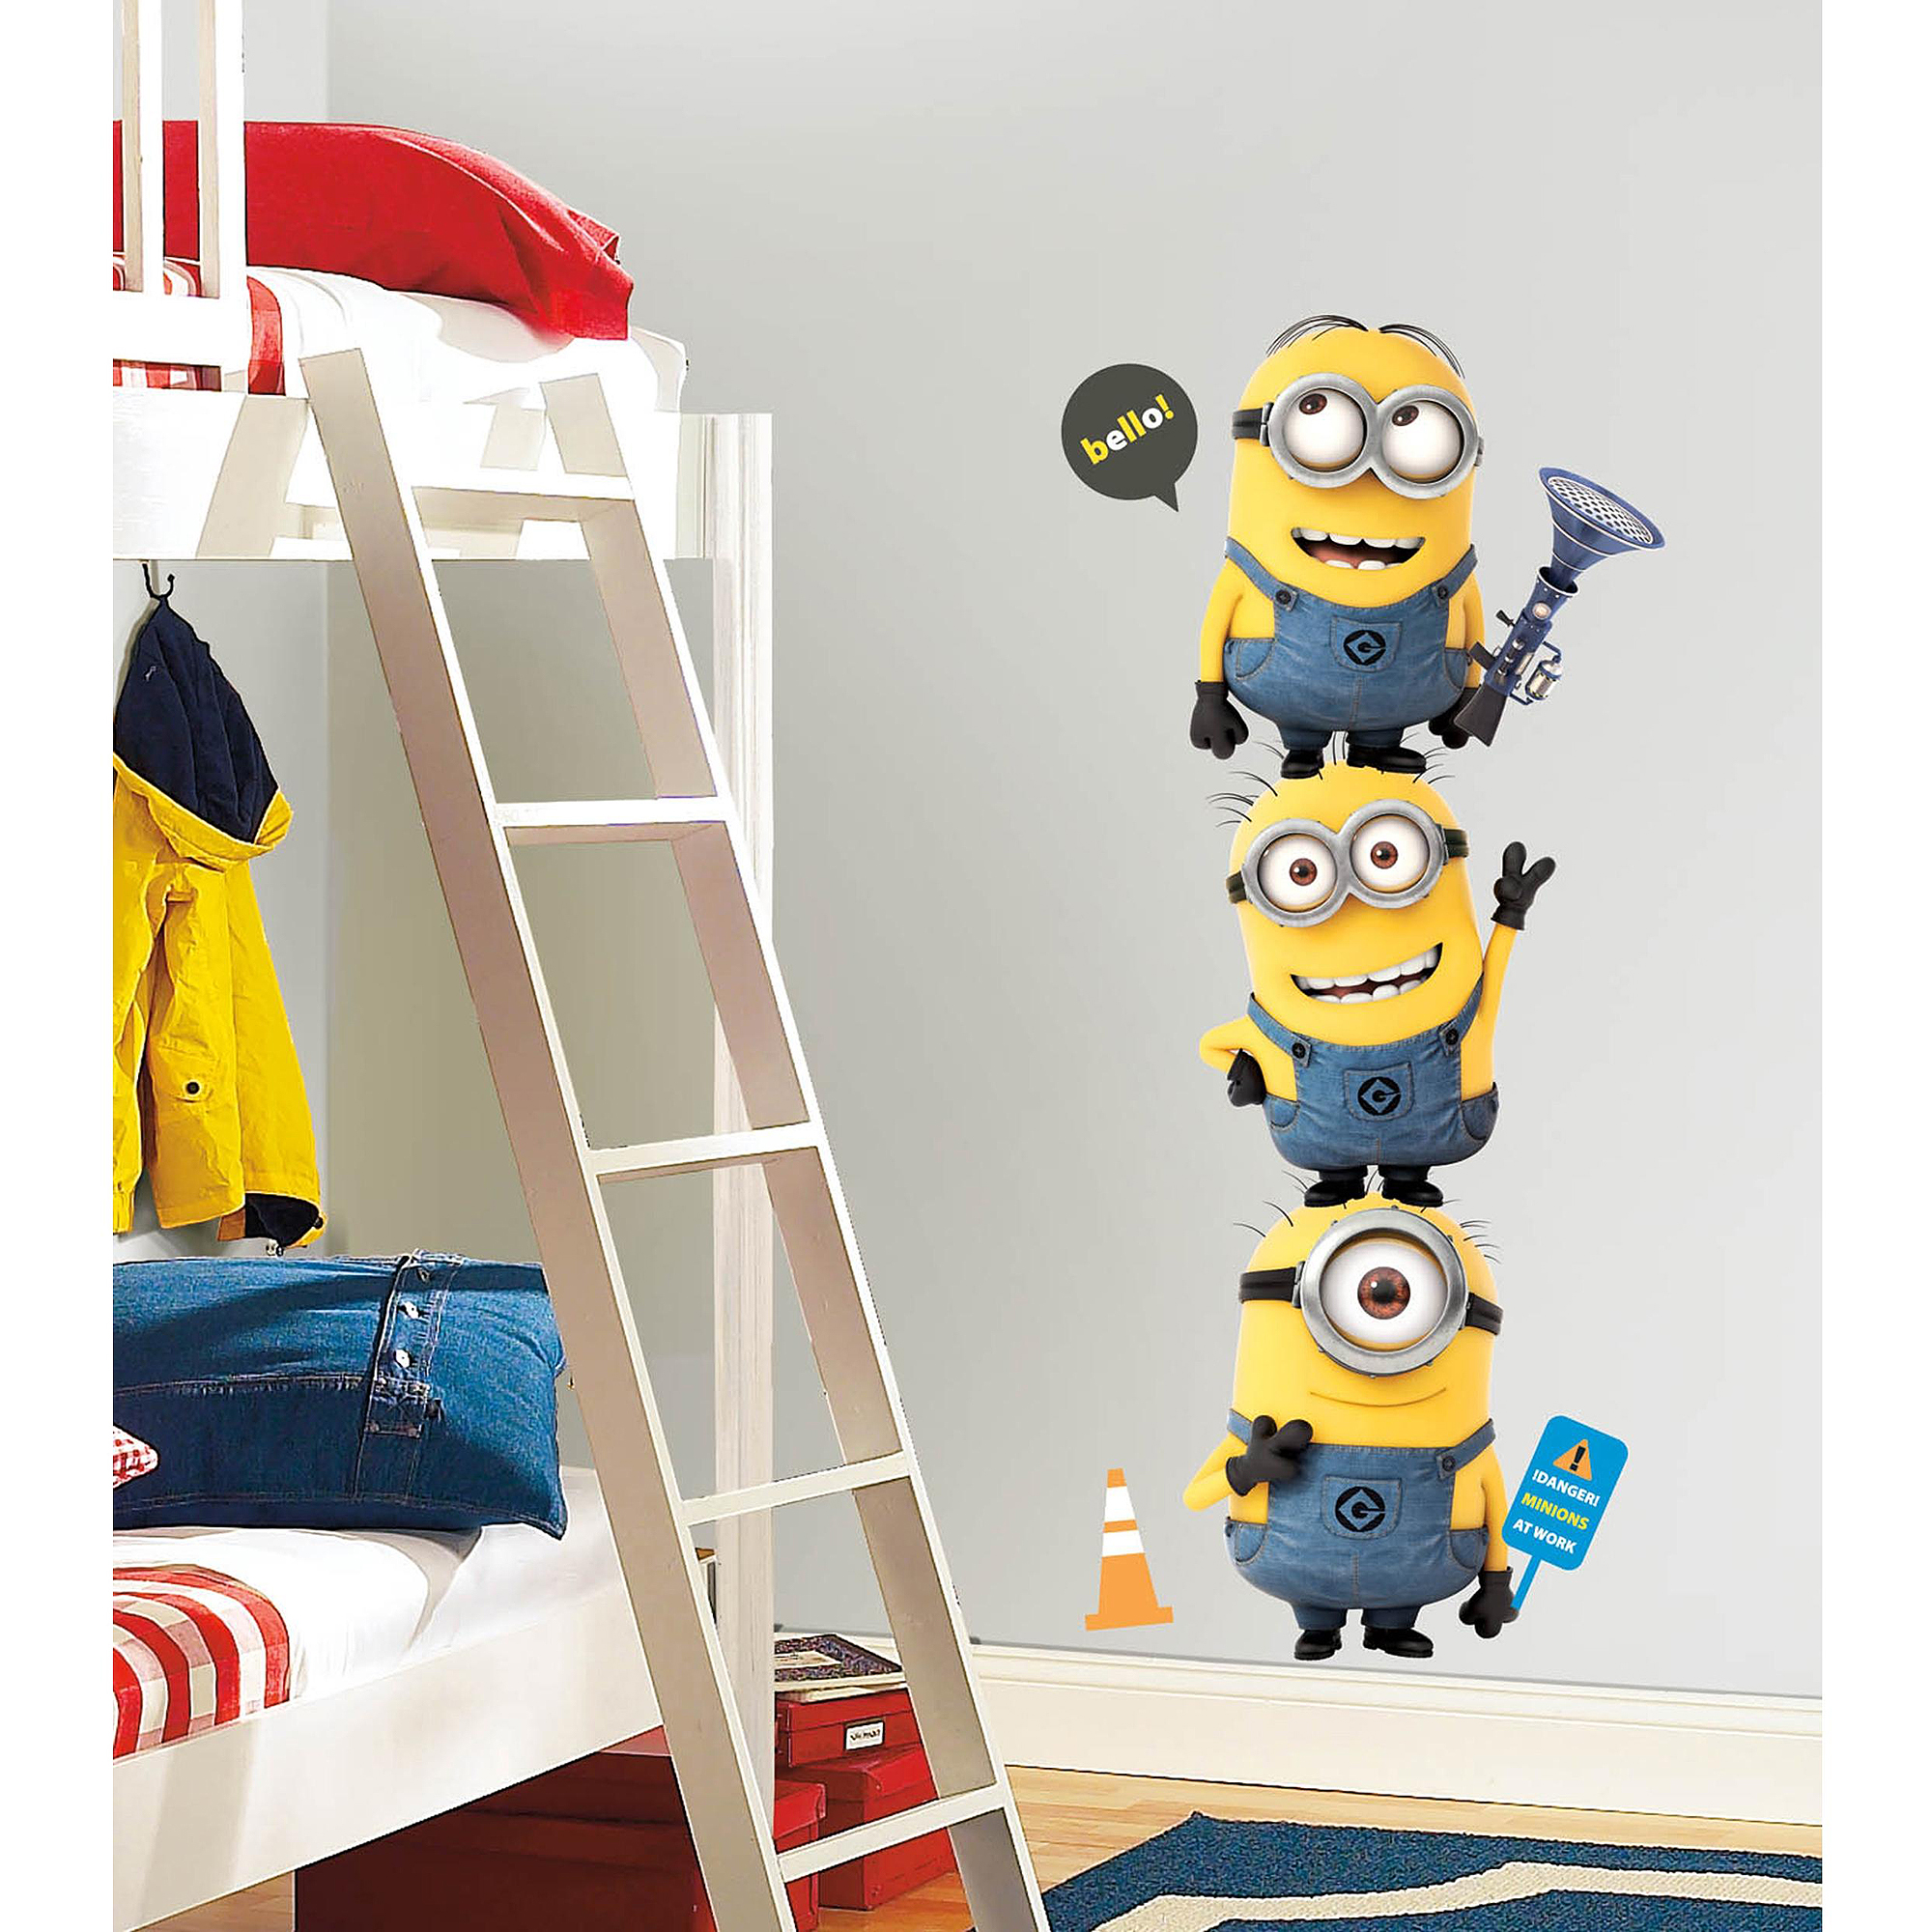 Despicable Me 2 Minions Giant Peel-and-Stick Giant Wall Decals